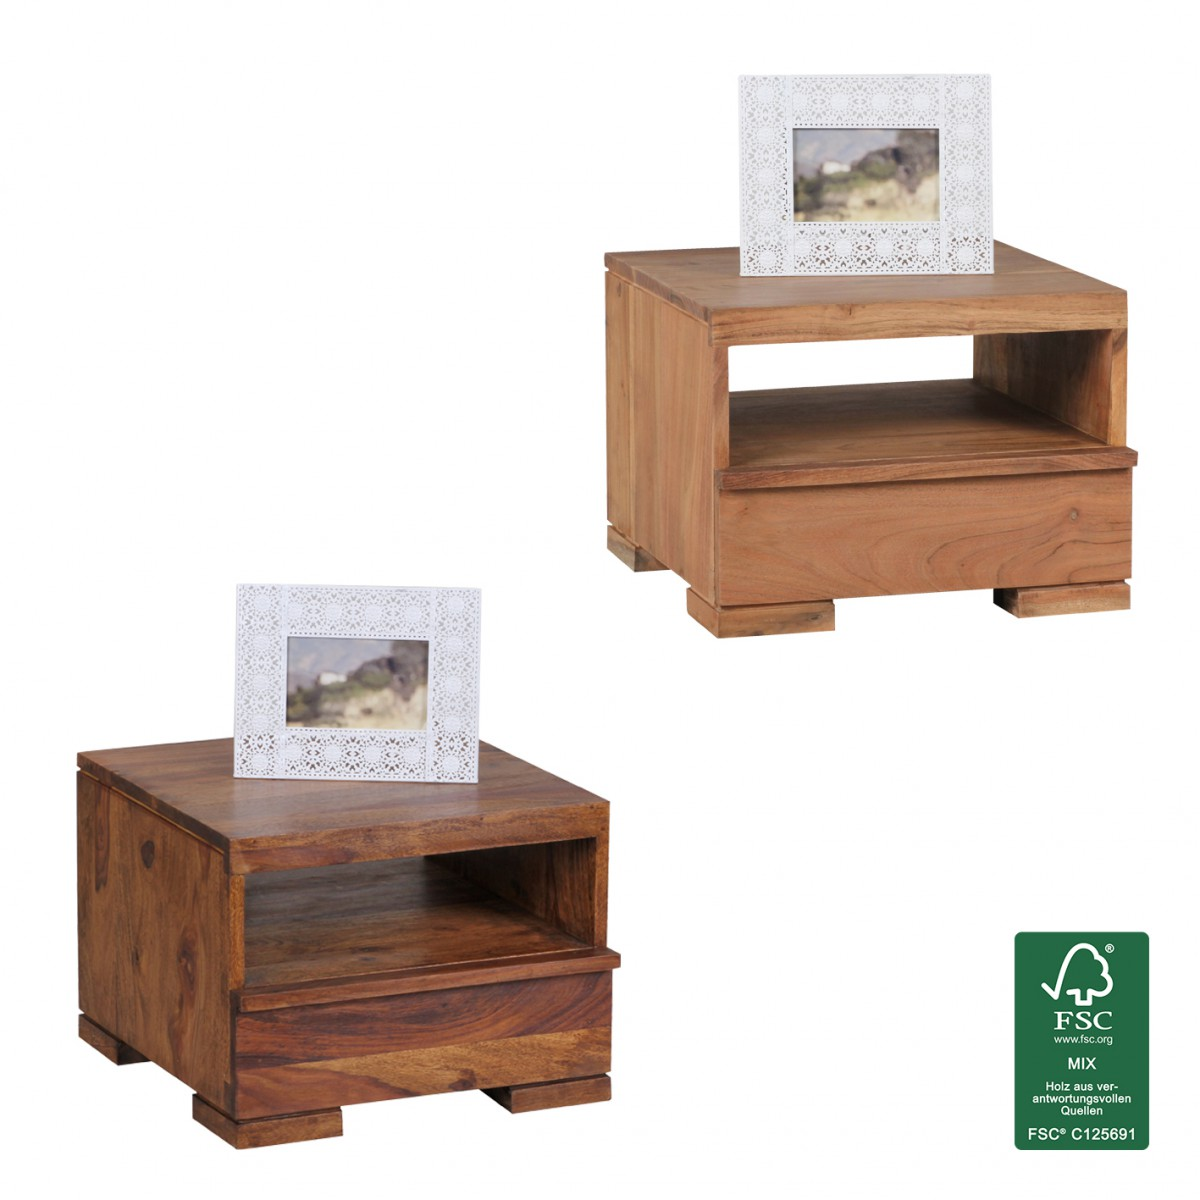 finebuy table de chevet en bois massif table de chevet 30 cm tiroir de ferme ebay. Black Bedroom Furniture Sets. Home Design Ideas